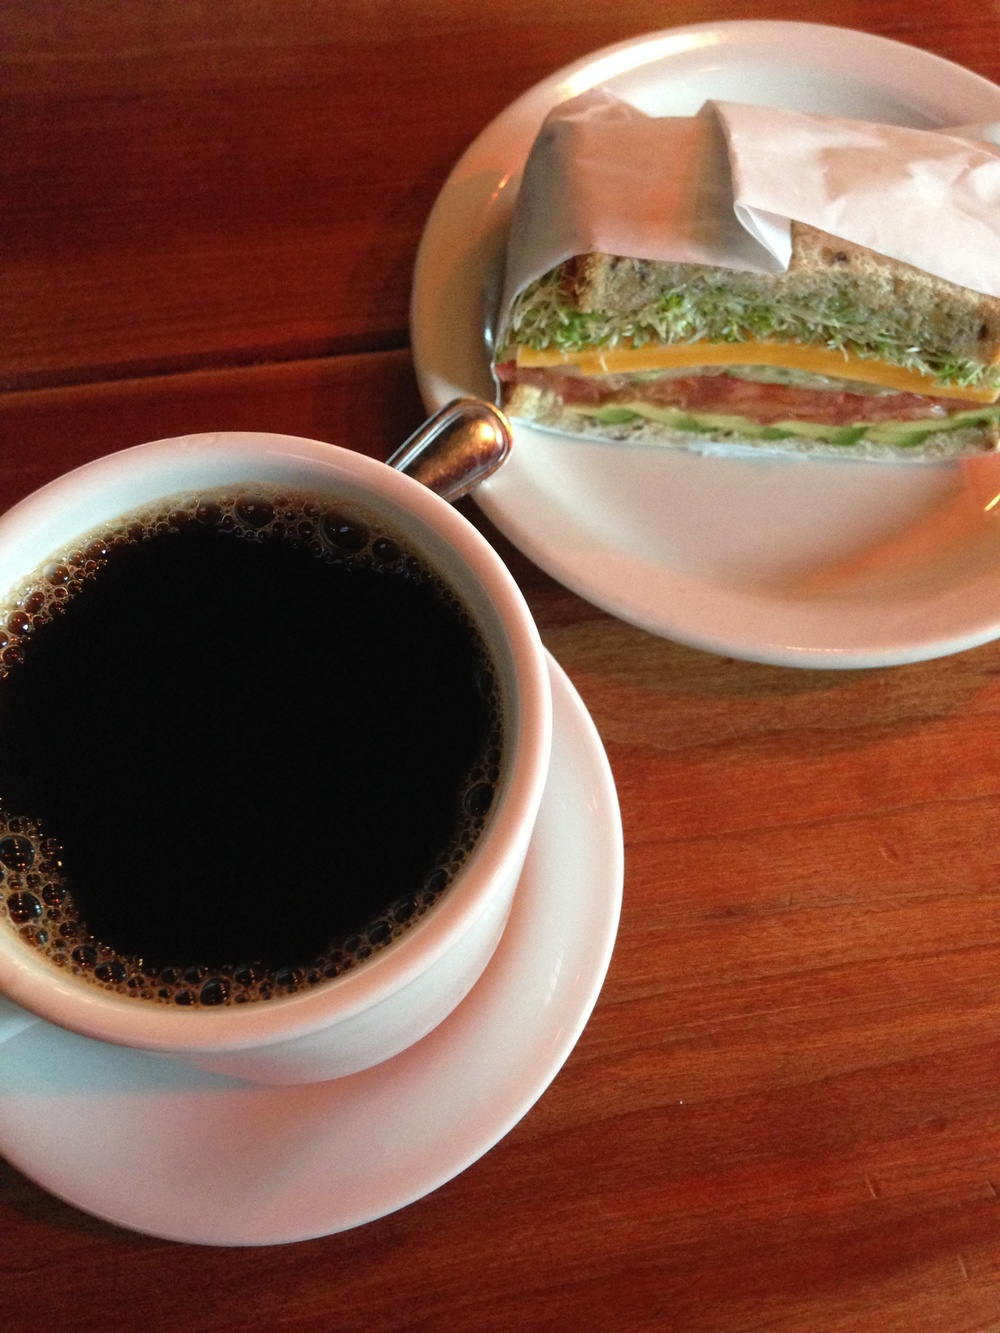 a quiet moment after work at a favorite cafe. a yummy veggie sandwich & hazelnut coffee are good companions for a work session.